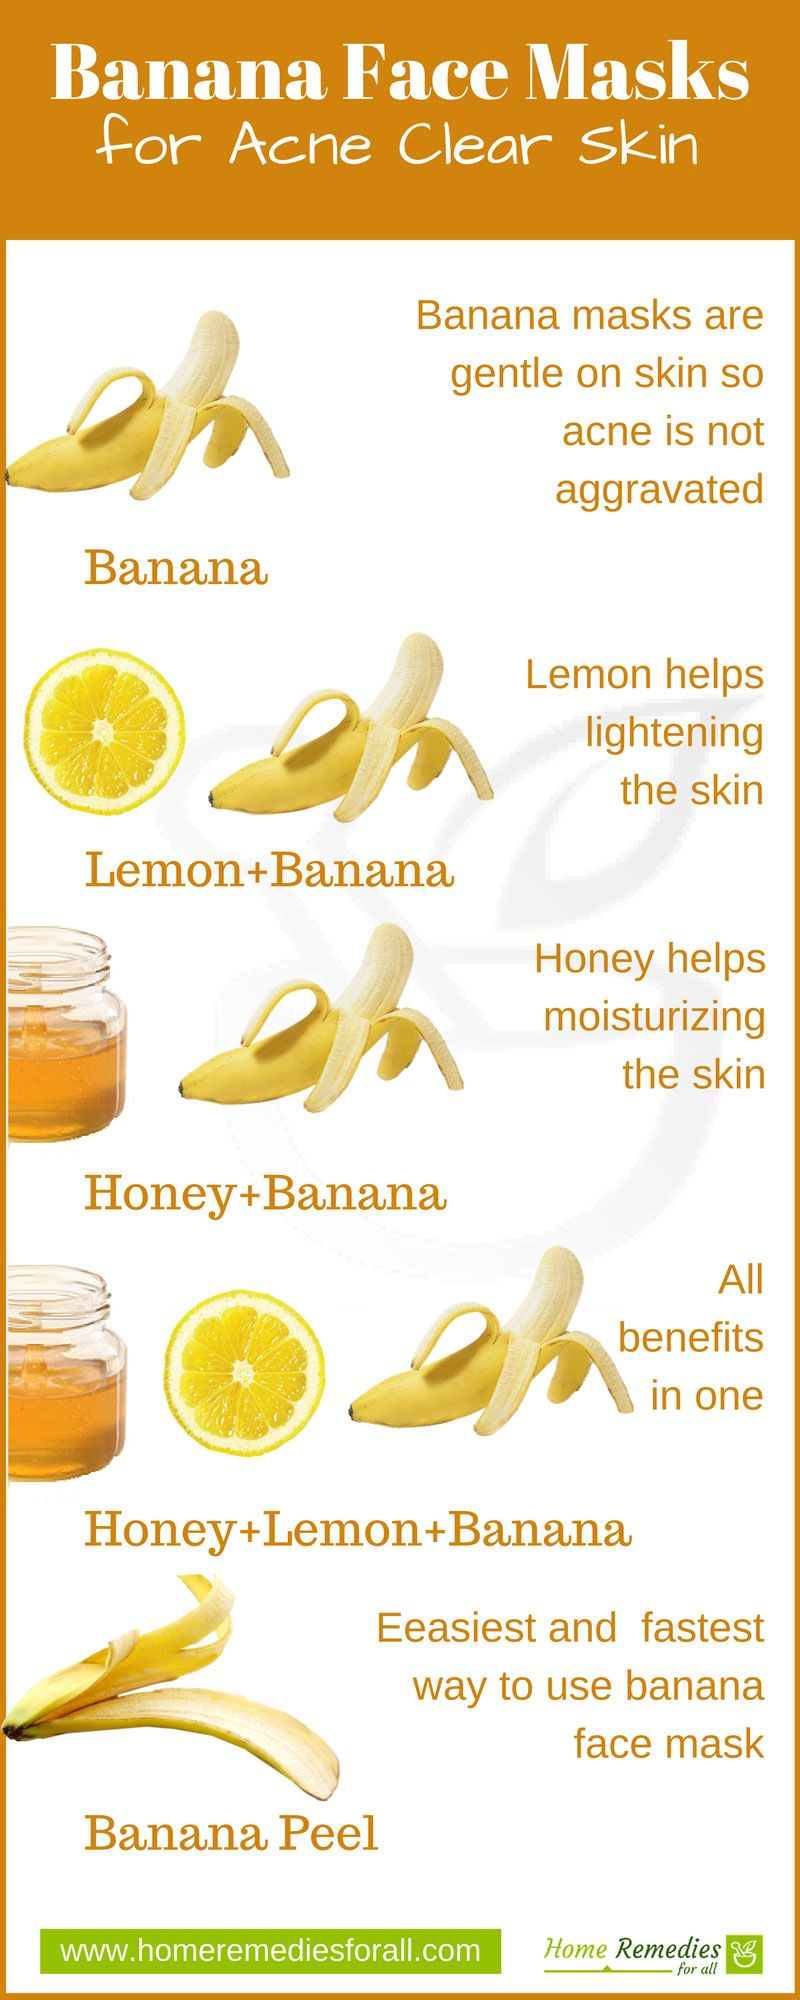 5 Banana Masks for Acne Clear Skin (With images) | Banana